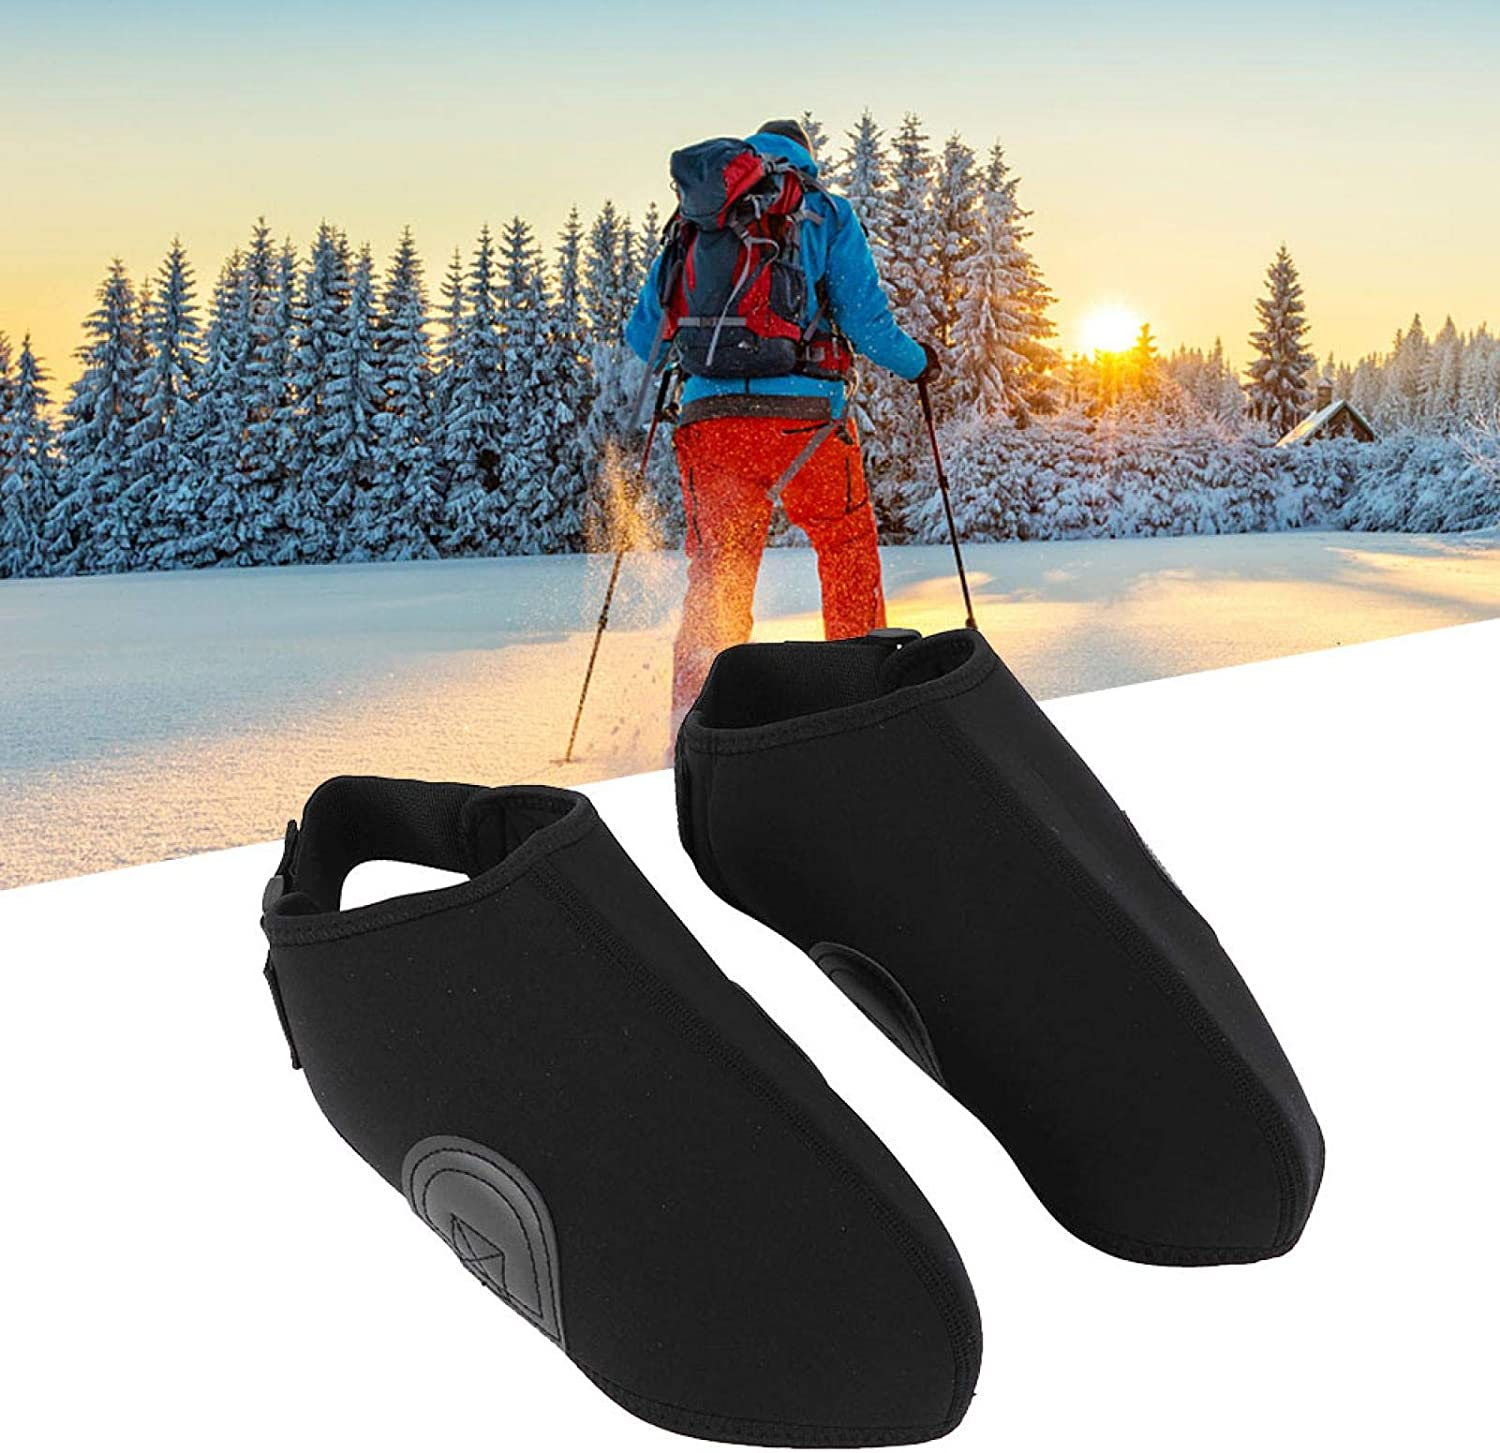 New mail order Tomantery Double Plate Snowshoe New color Cover Micro for Protecti Elastic